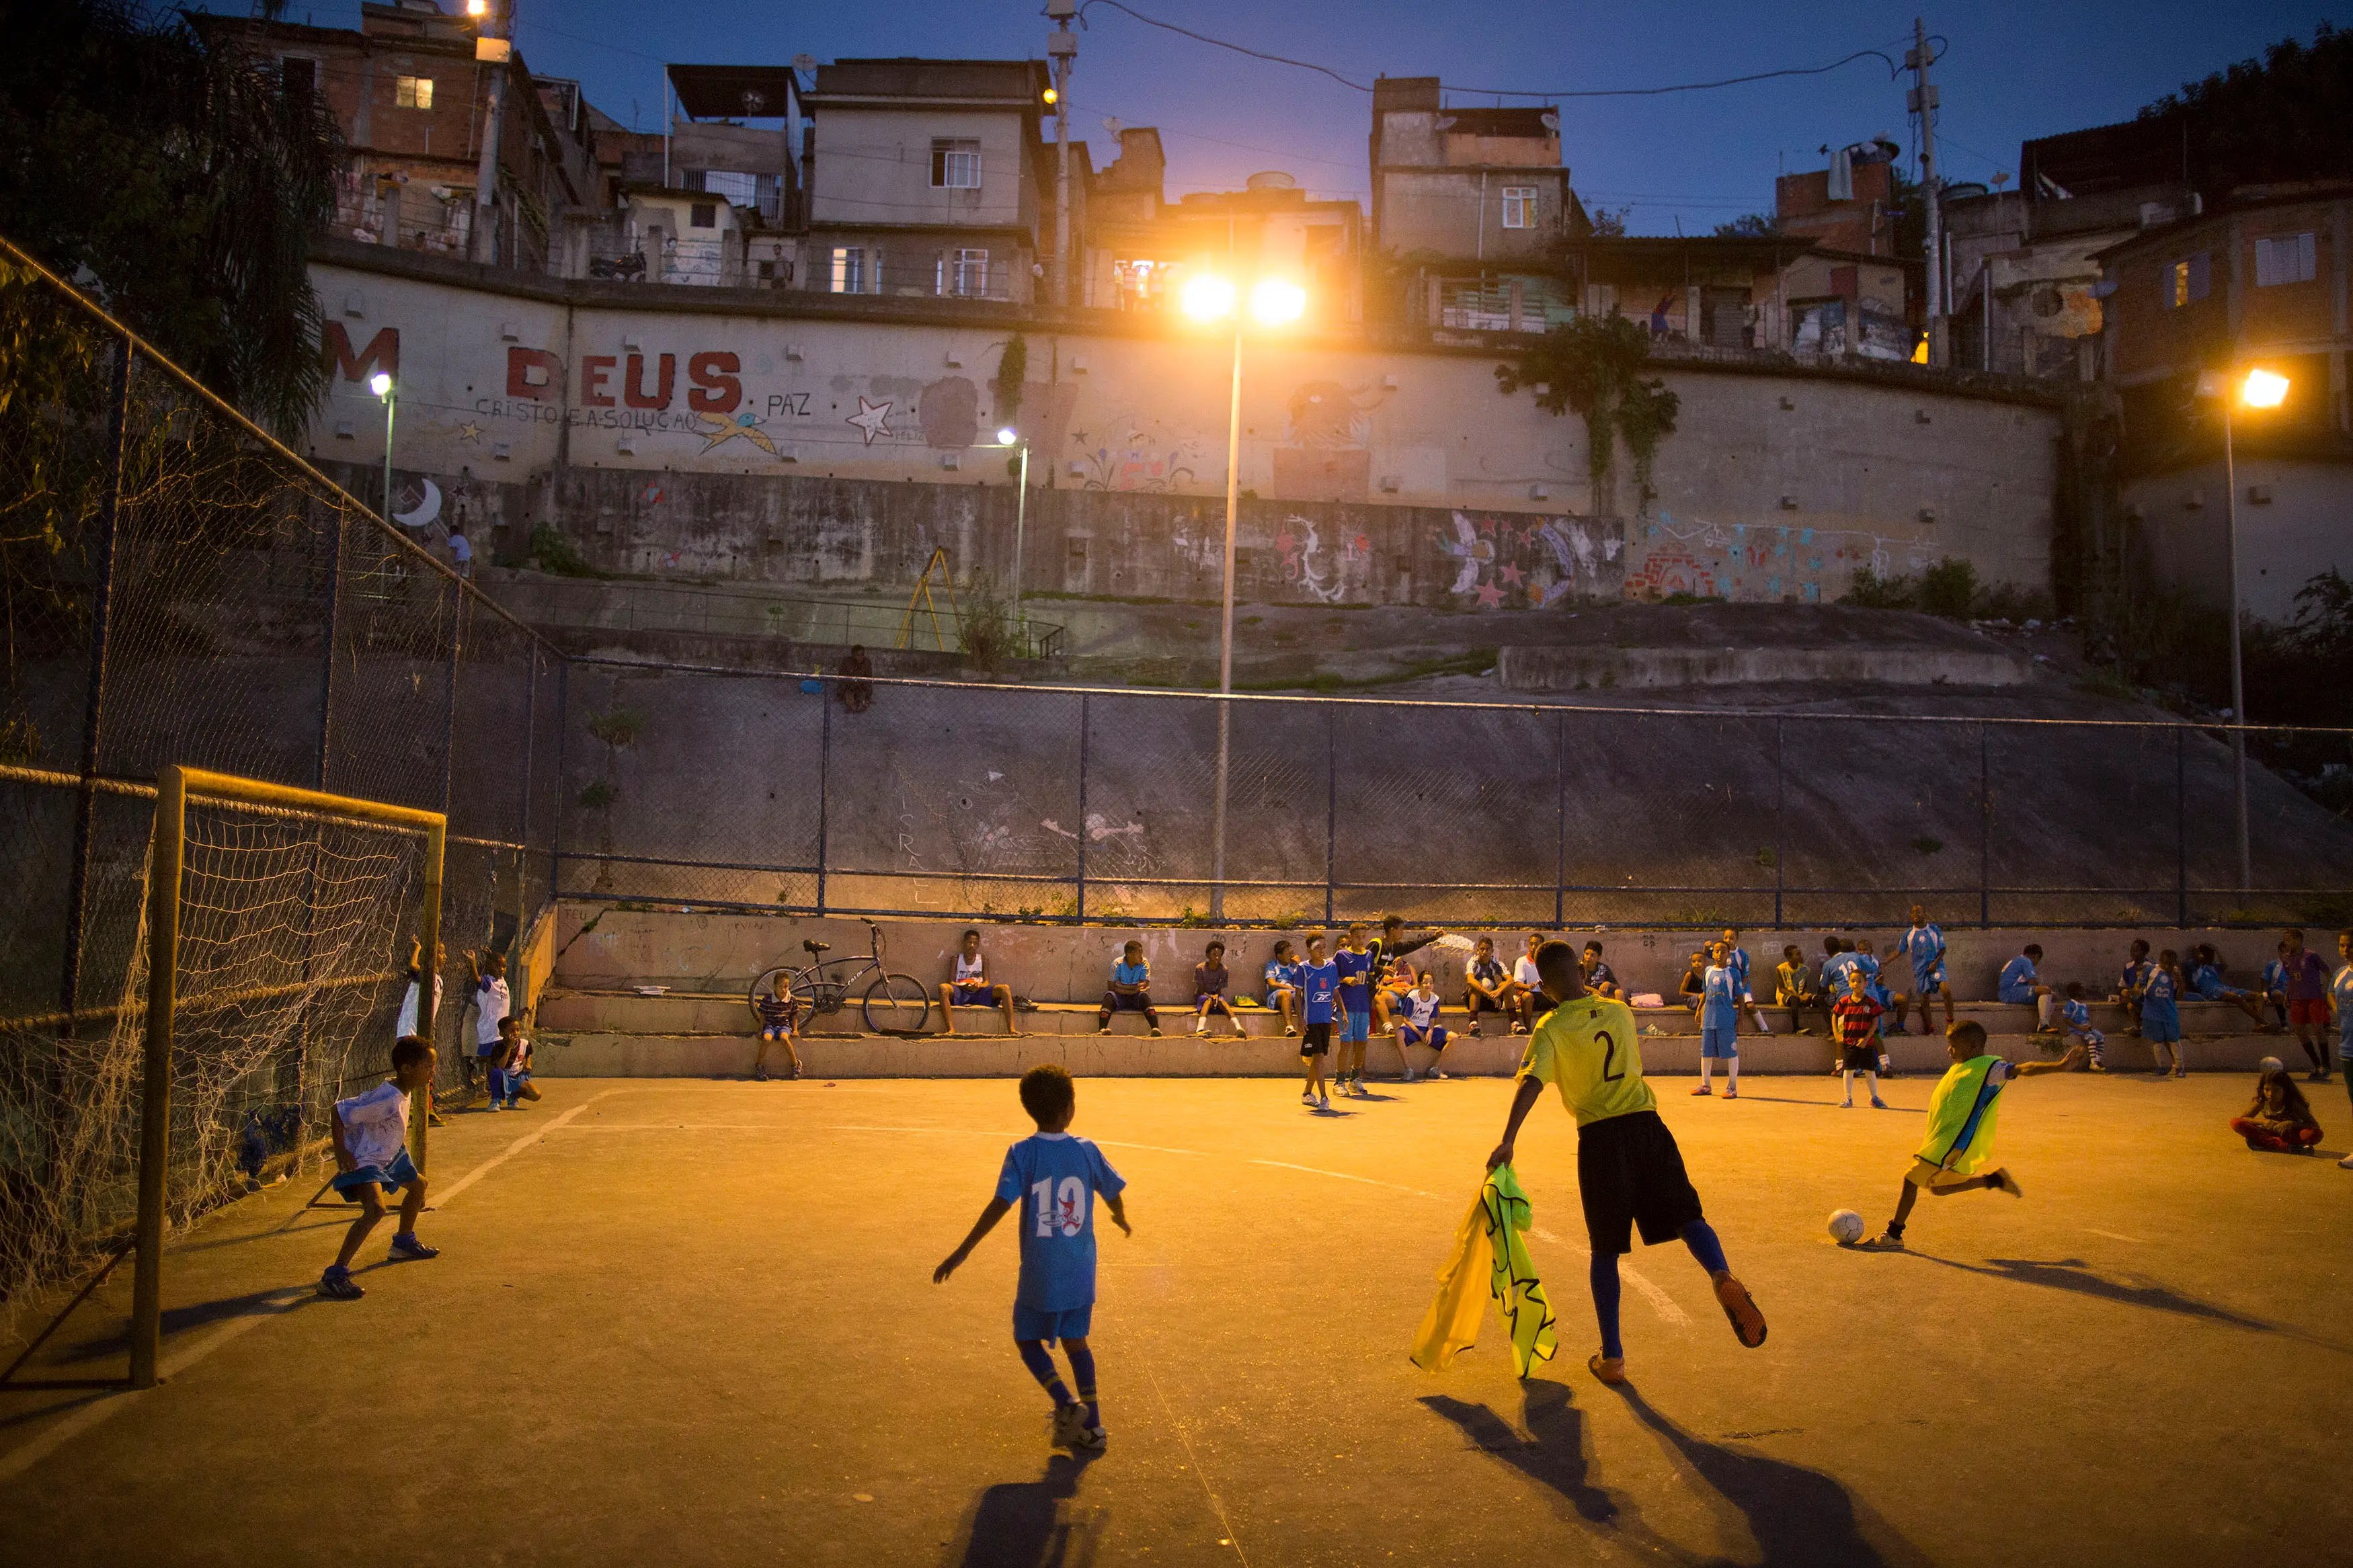 Christ The Redeemer Hd Wallpaper Gorgeous Photos Of Kids Playing Soccer In Brazil S Slums